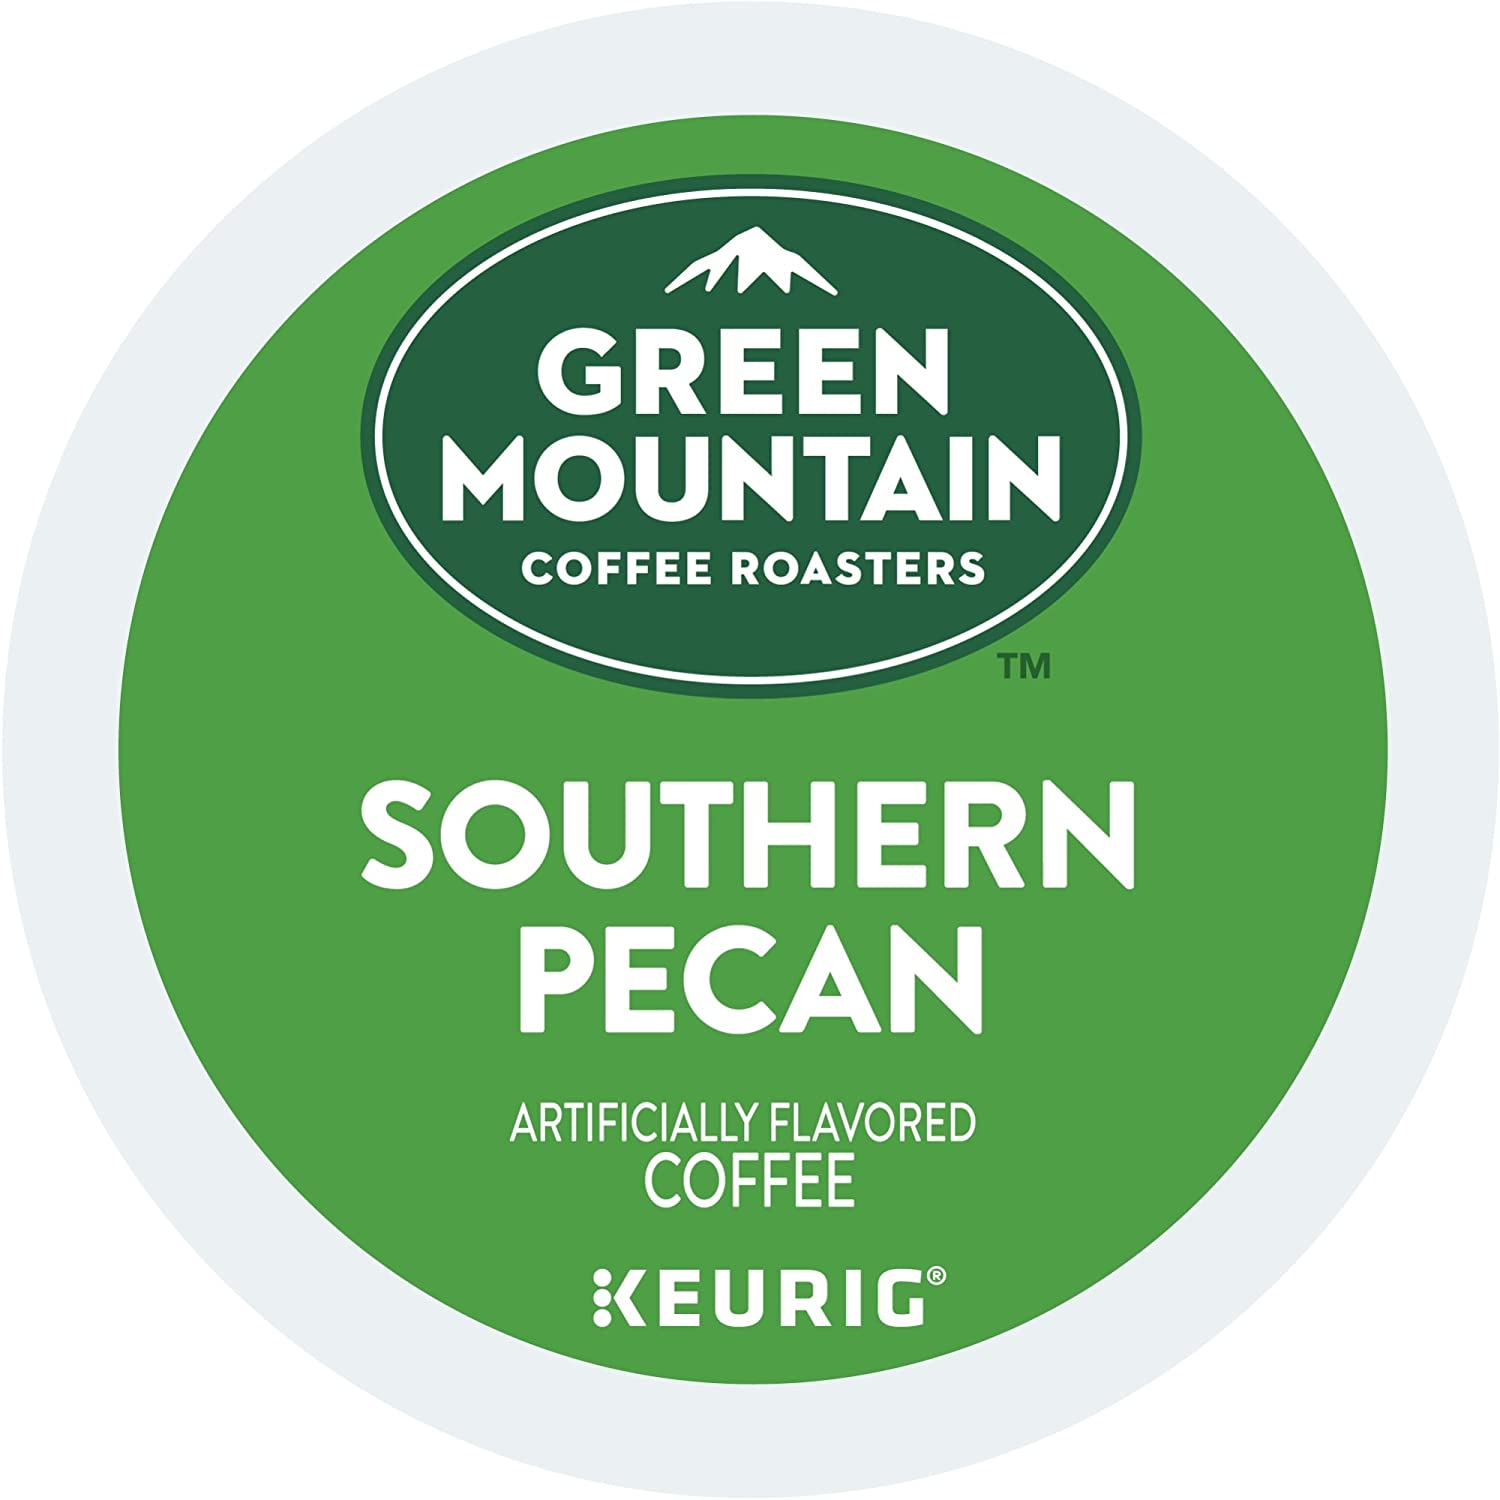 Green Mountain Coffee Southern Pecan Keurig Single-Serve K-Cup Pods, Light Roast Coffee, 24 Count 6772